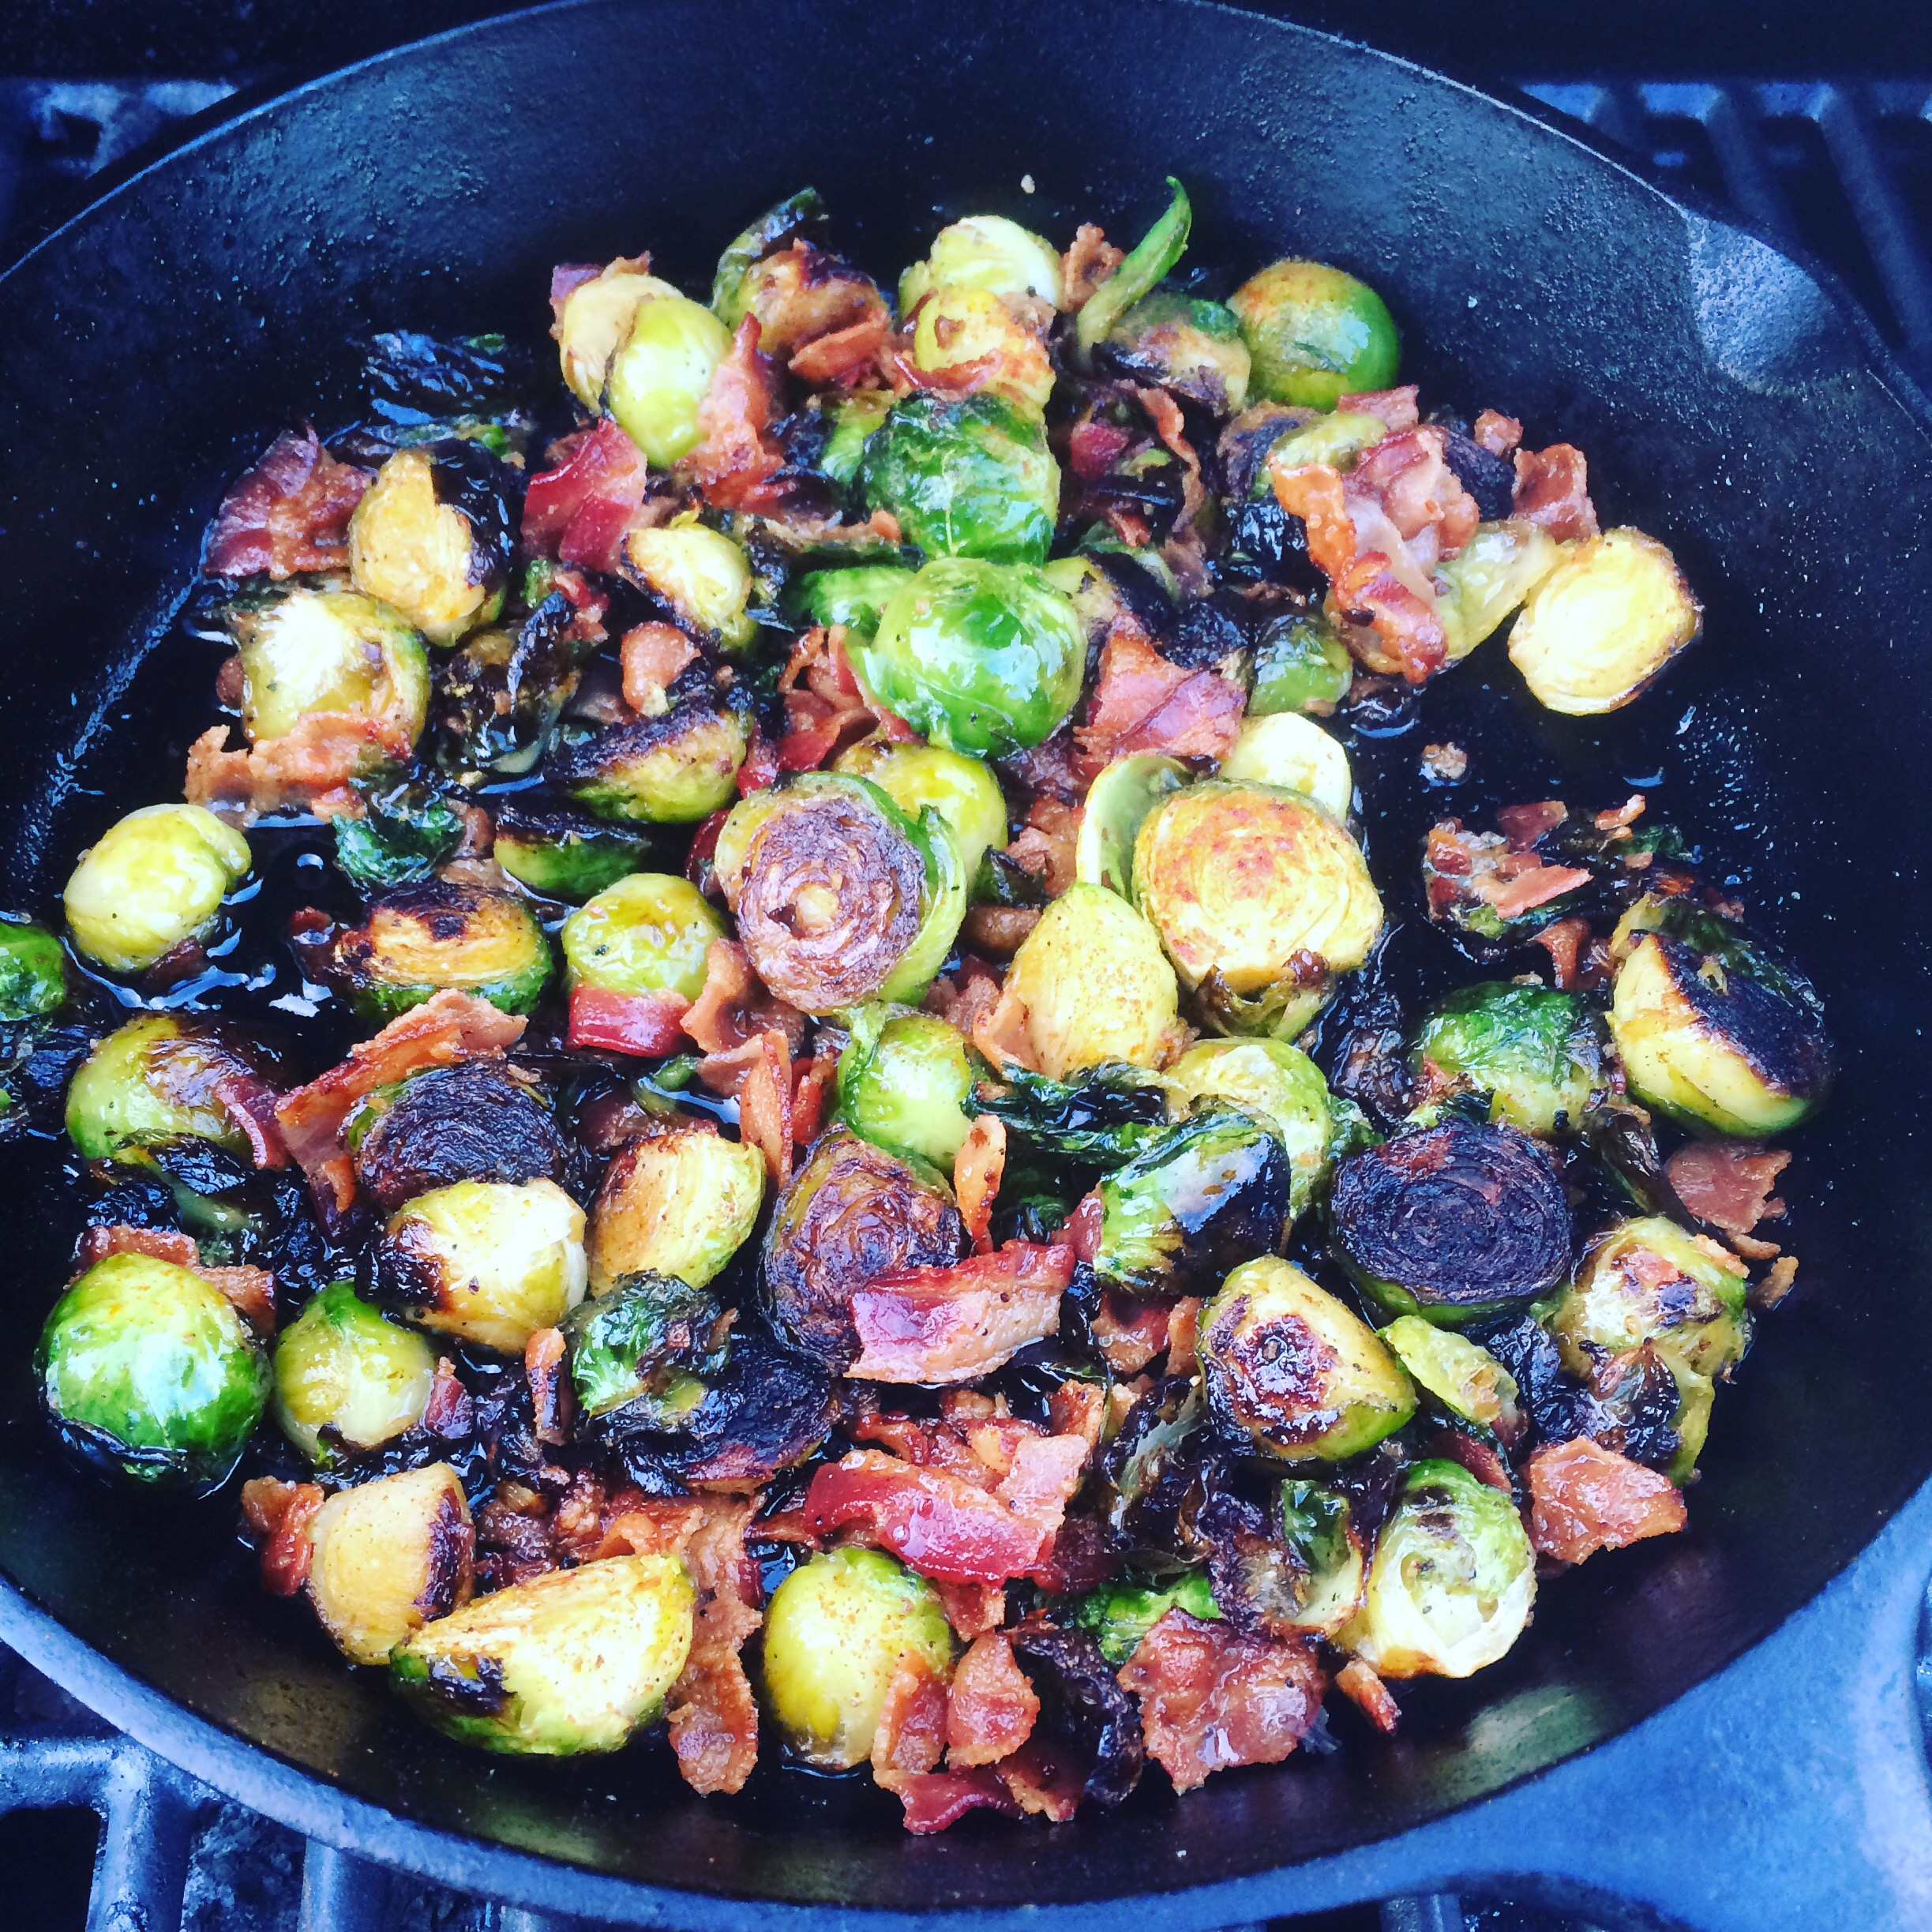 Brussels Sprouts with Bacon, Maple Syrup and Minus 8 IP8 IPA Vinegar by Frederick Maryland Chef Chris Spear